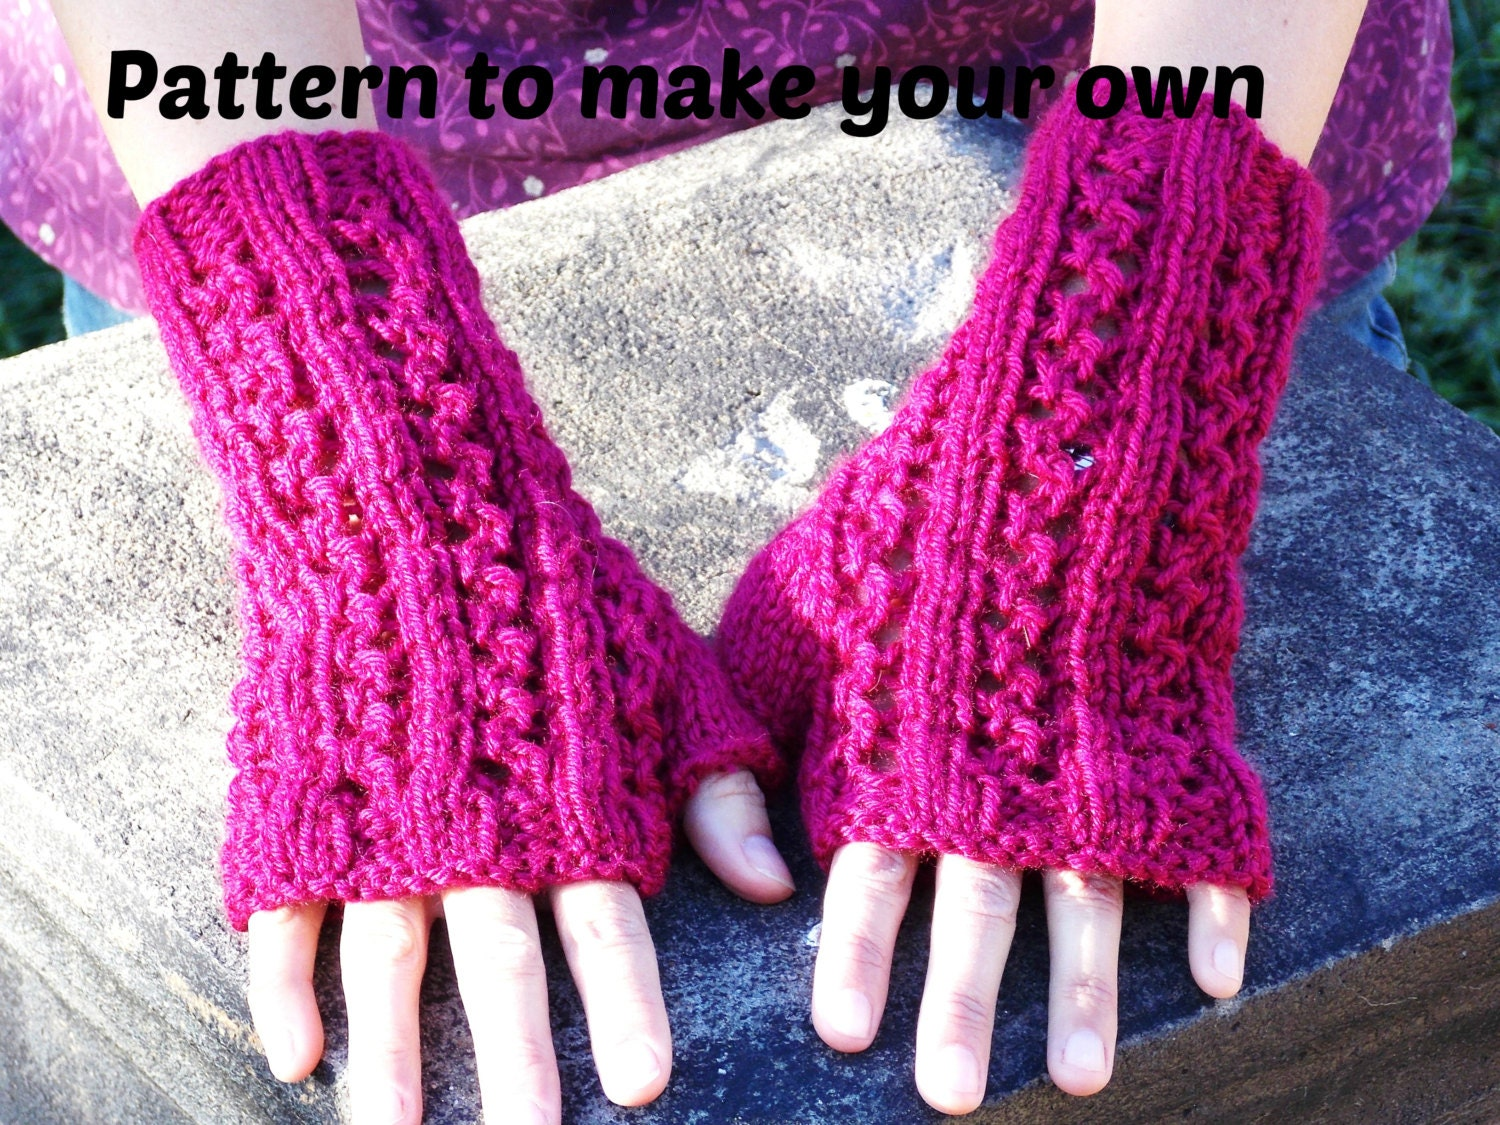 Knitting Pattern For Lace Gloves : knitting PATTERN fingerless gloves zigzag lace rib texting